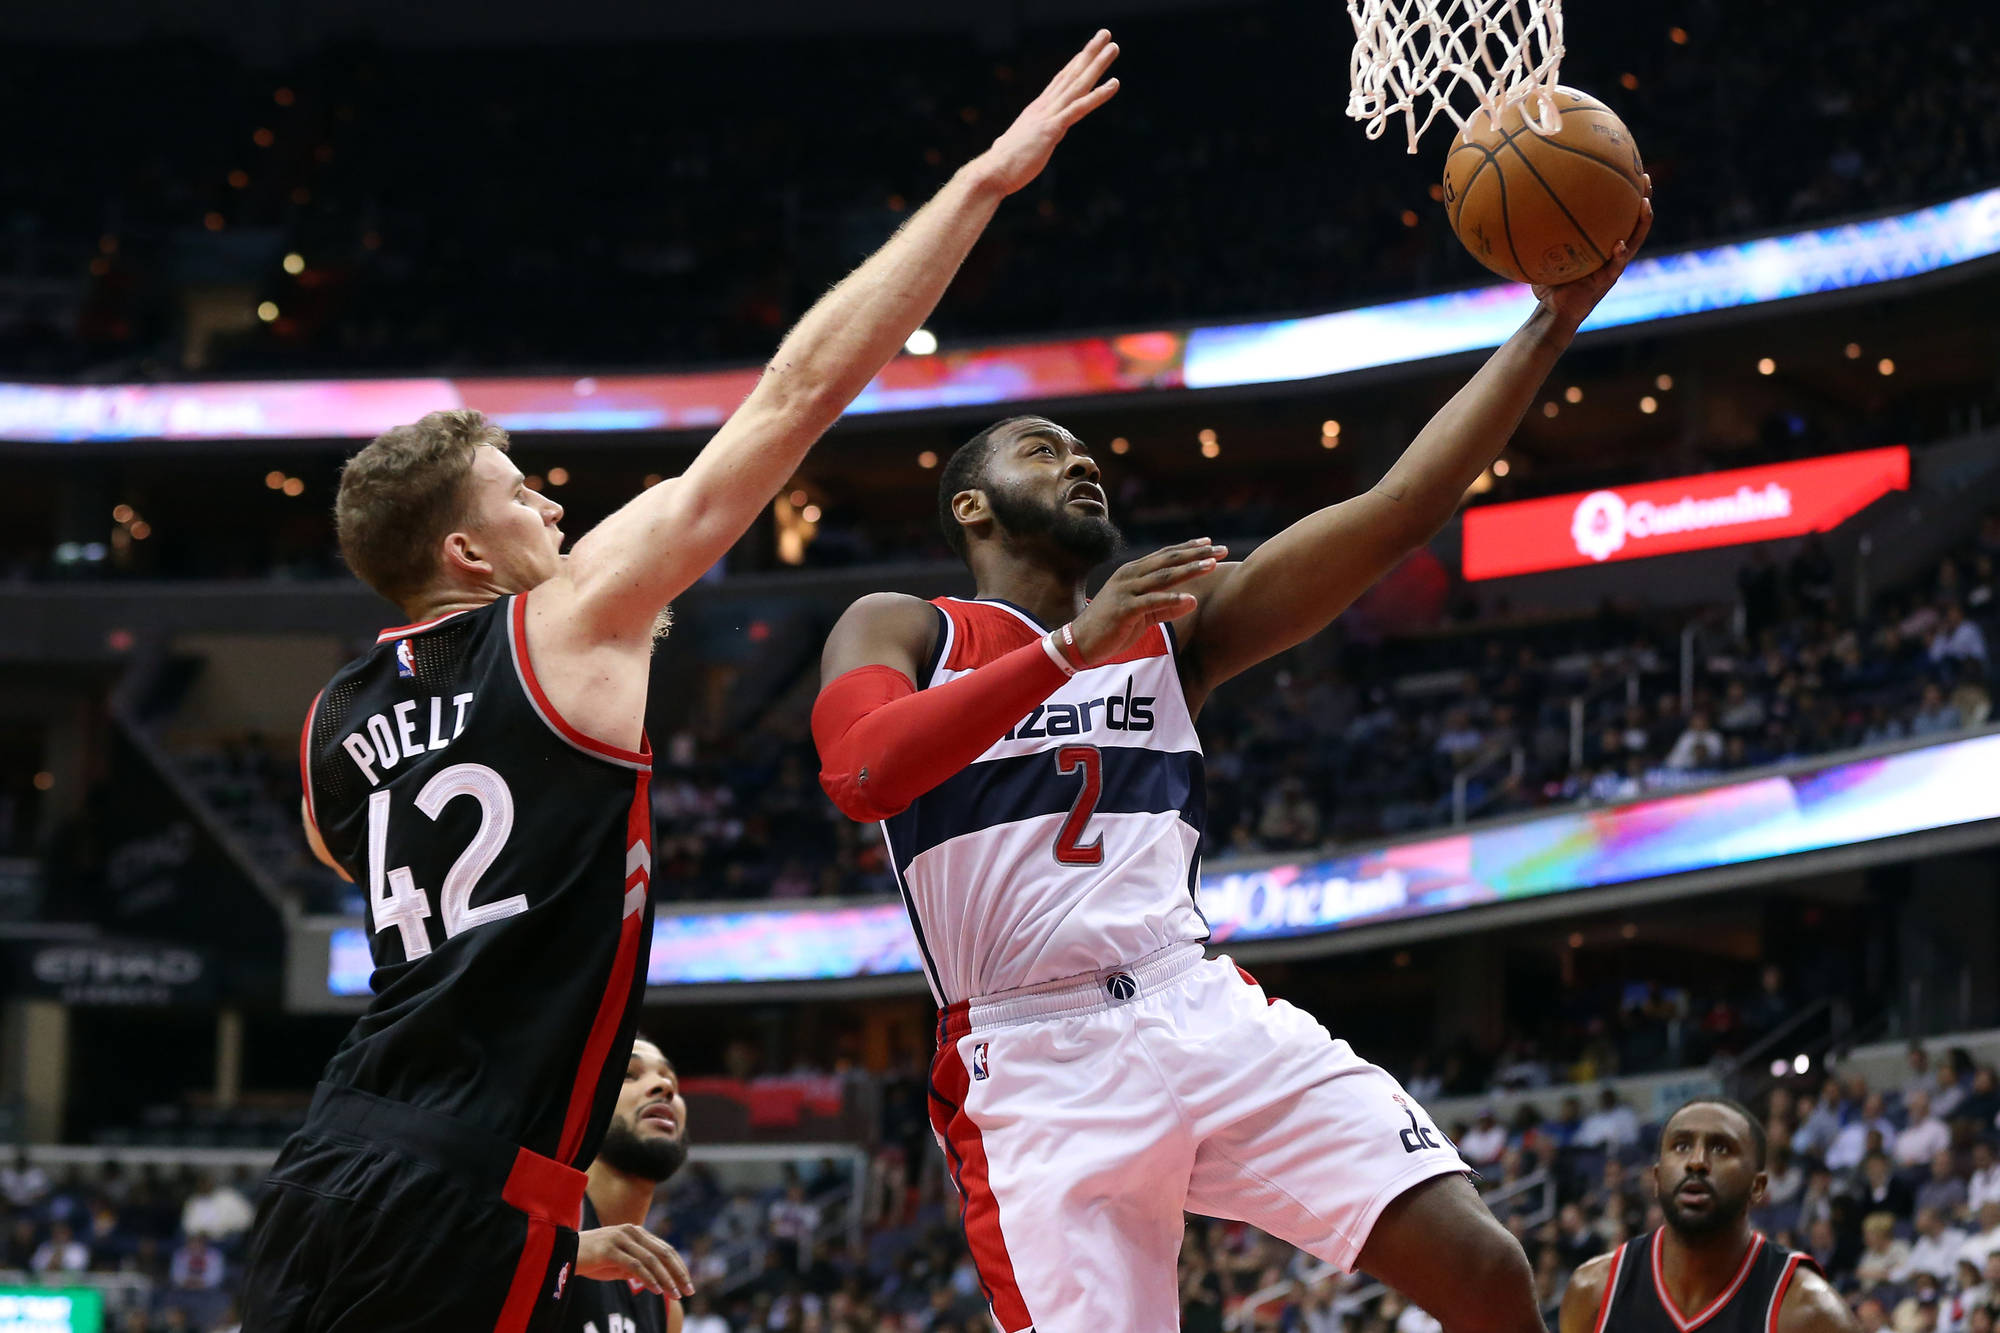 Not the home opener the Wizards were looking for